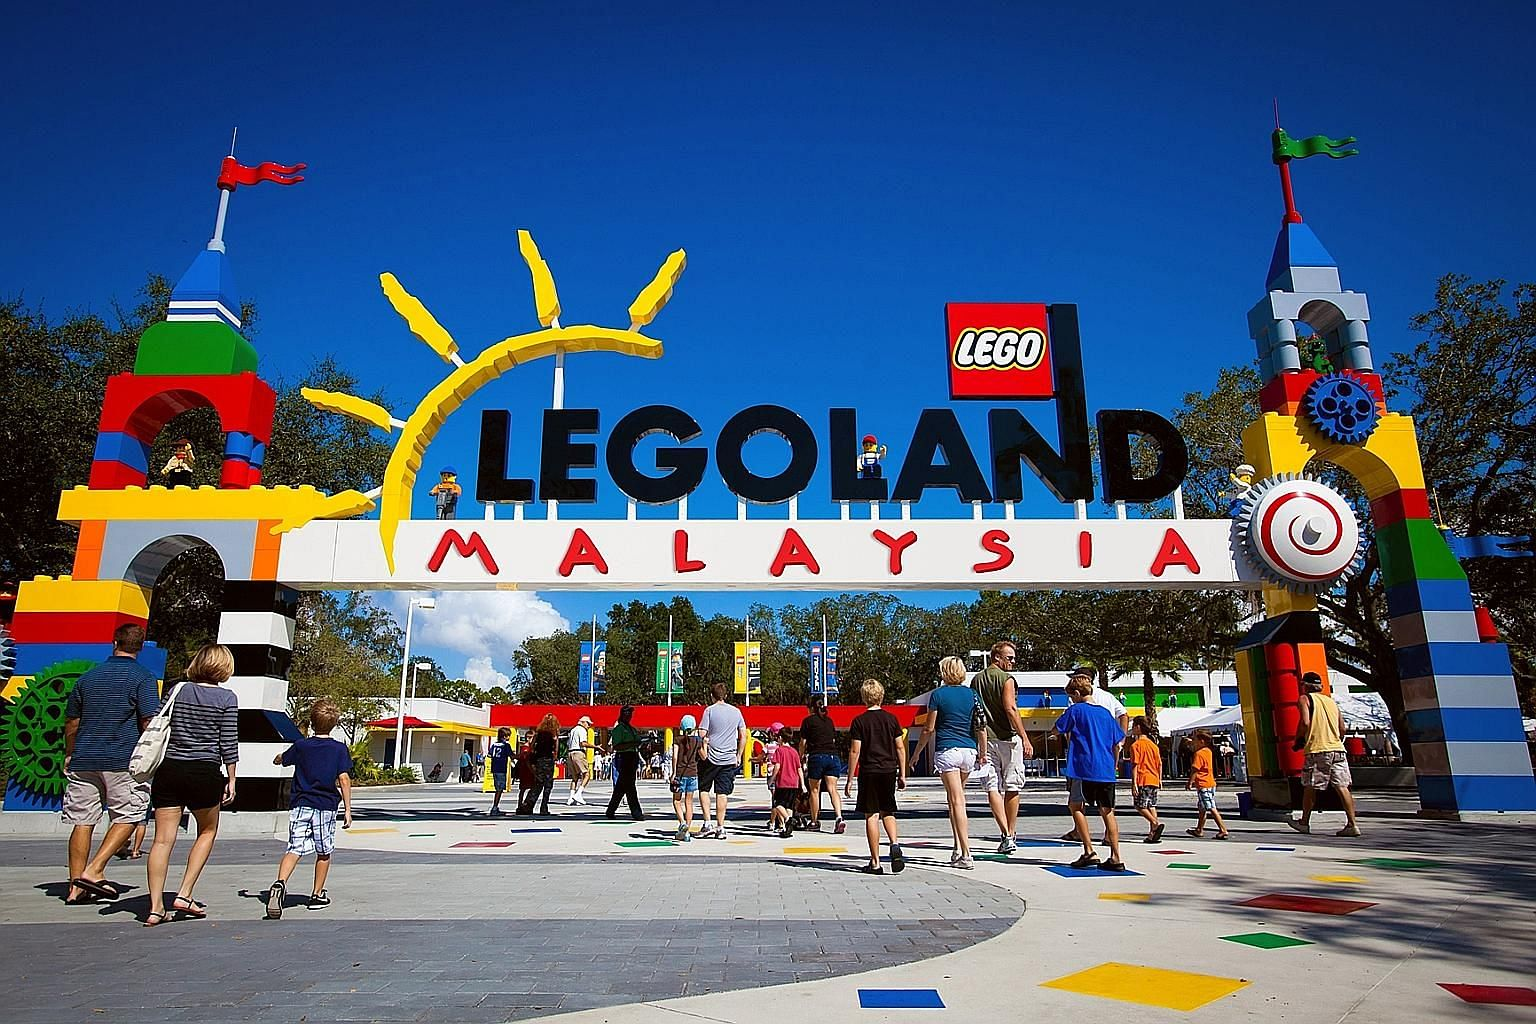 Legoland could be valued at around $332 million, including debt, Bloomberg has reported, citing sources.